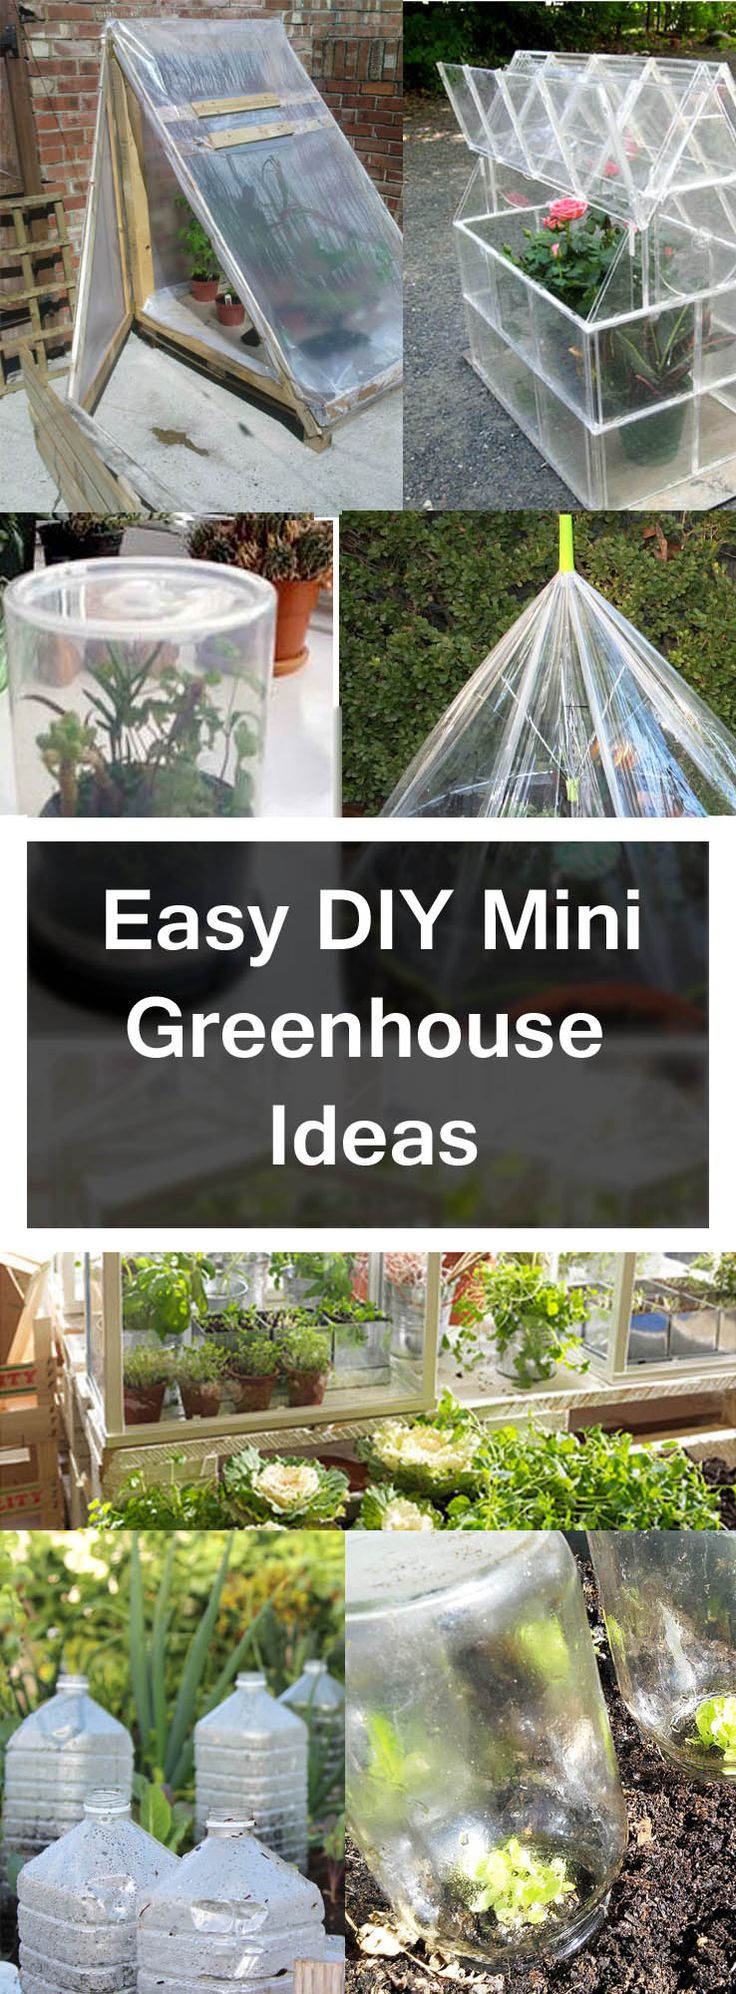 DIY  mini greenhouse Ideas http://livedan330.com/2015/11/15/diy-mini-greenhouse-ideas/